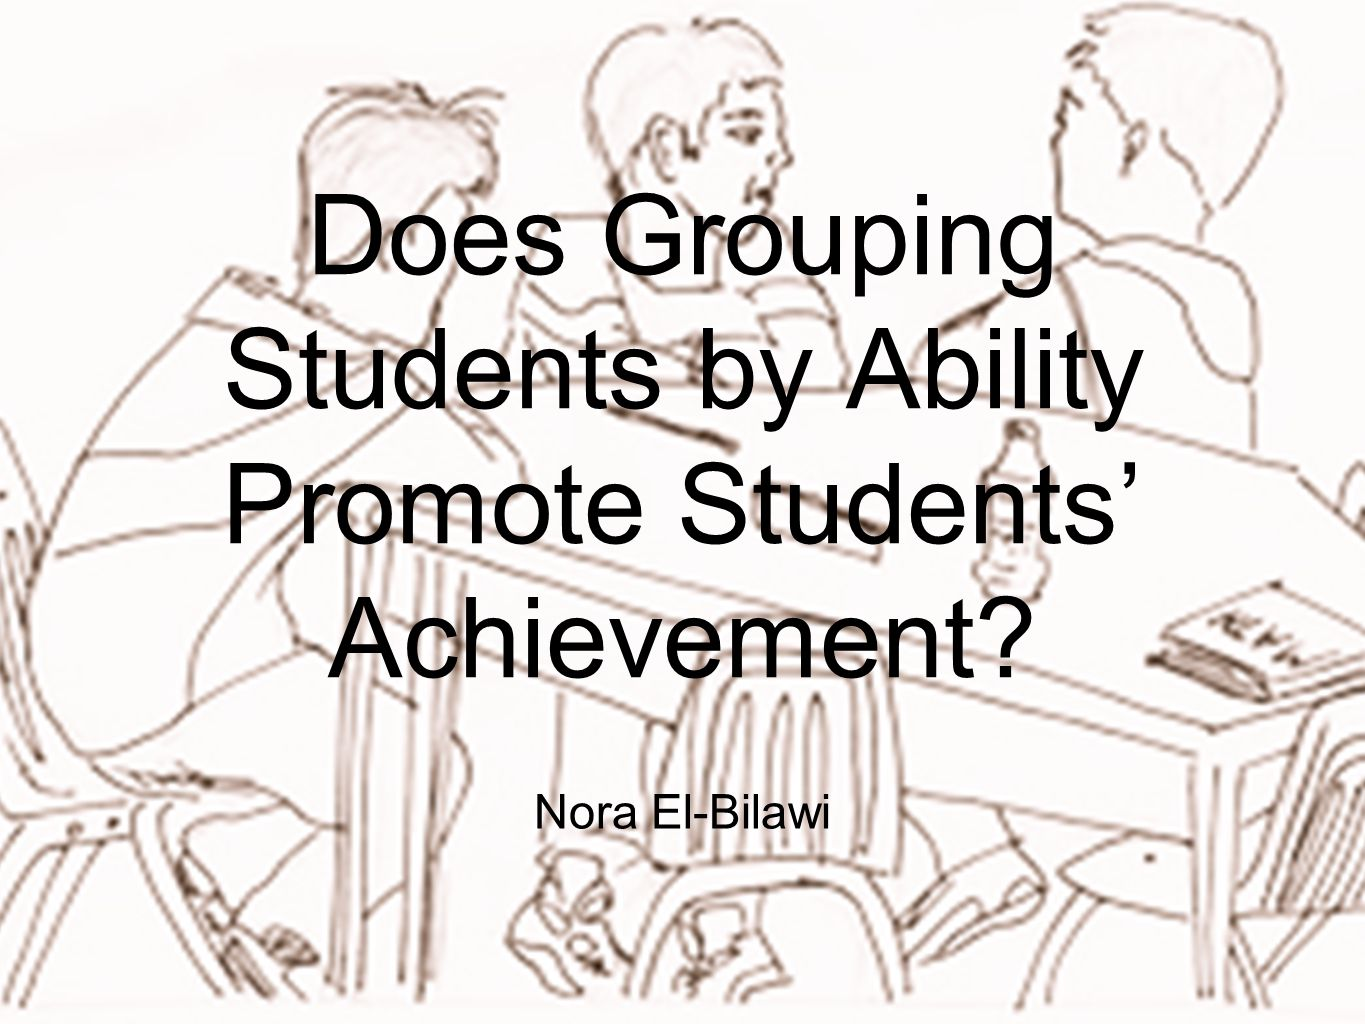 Does Grouping Students by Ability Promote Students' Achievement